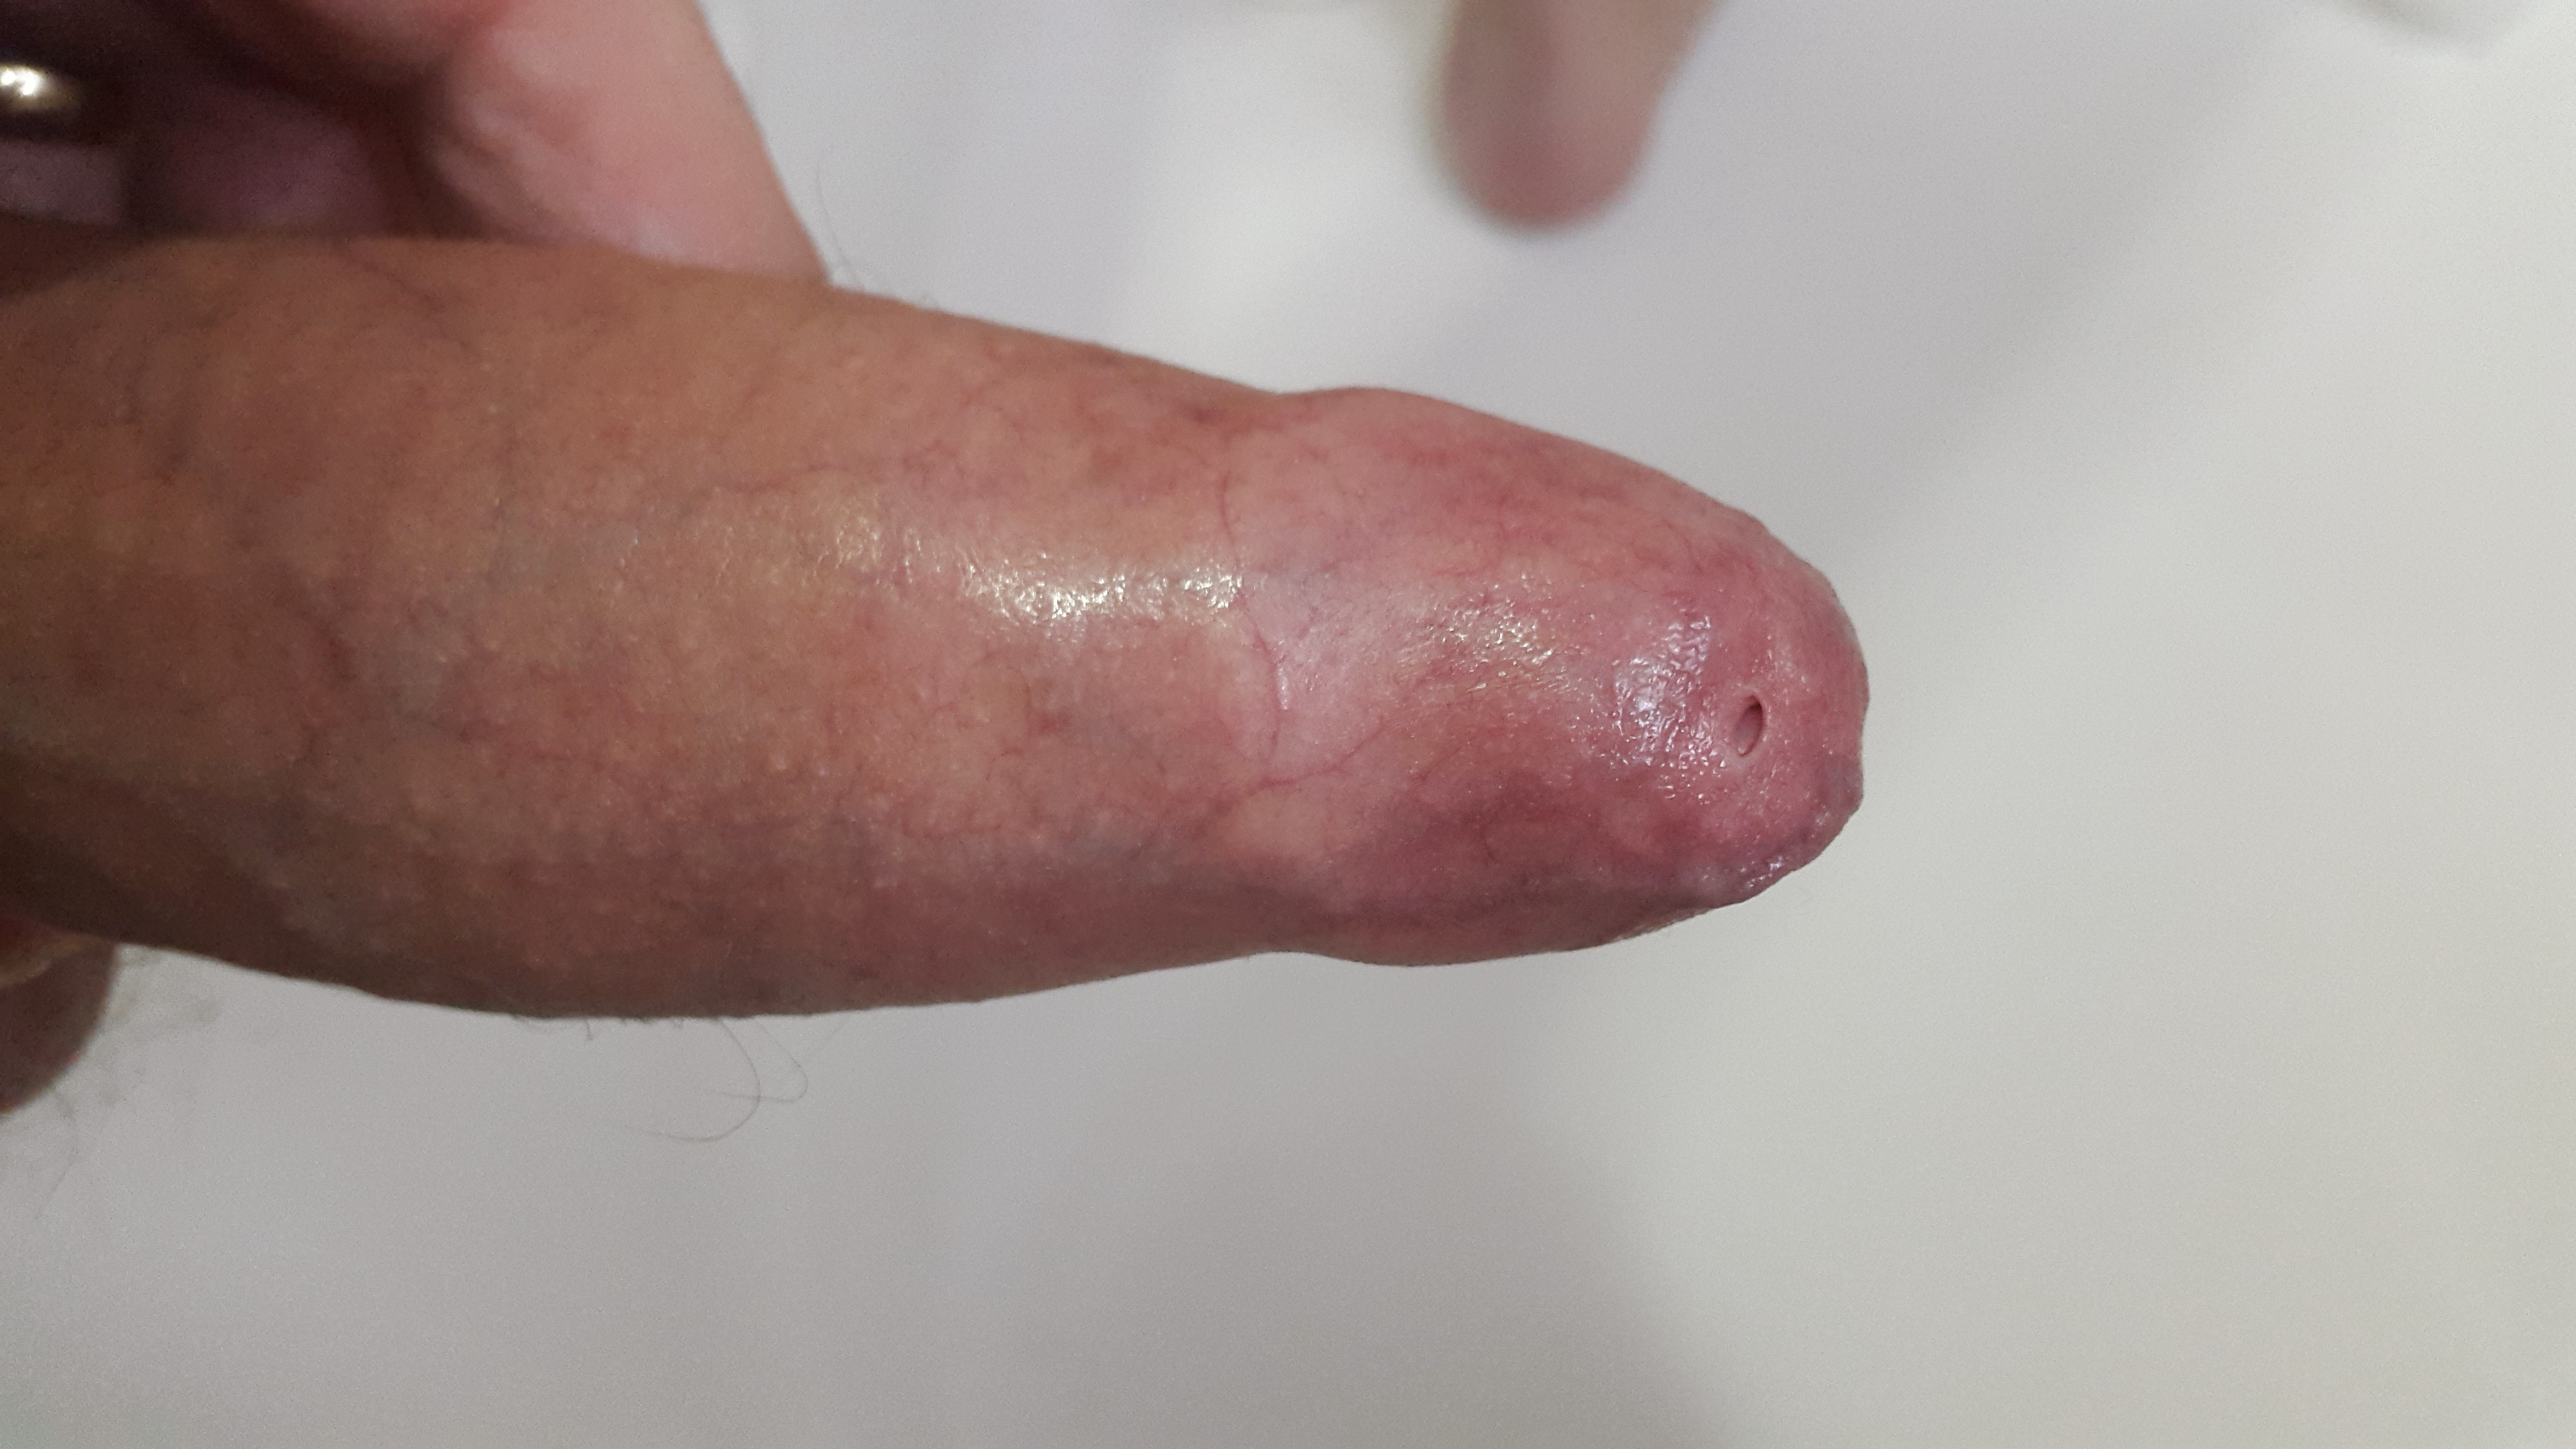 erect penis with severe pinhole phimosis